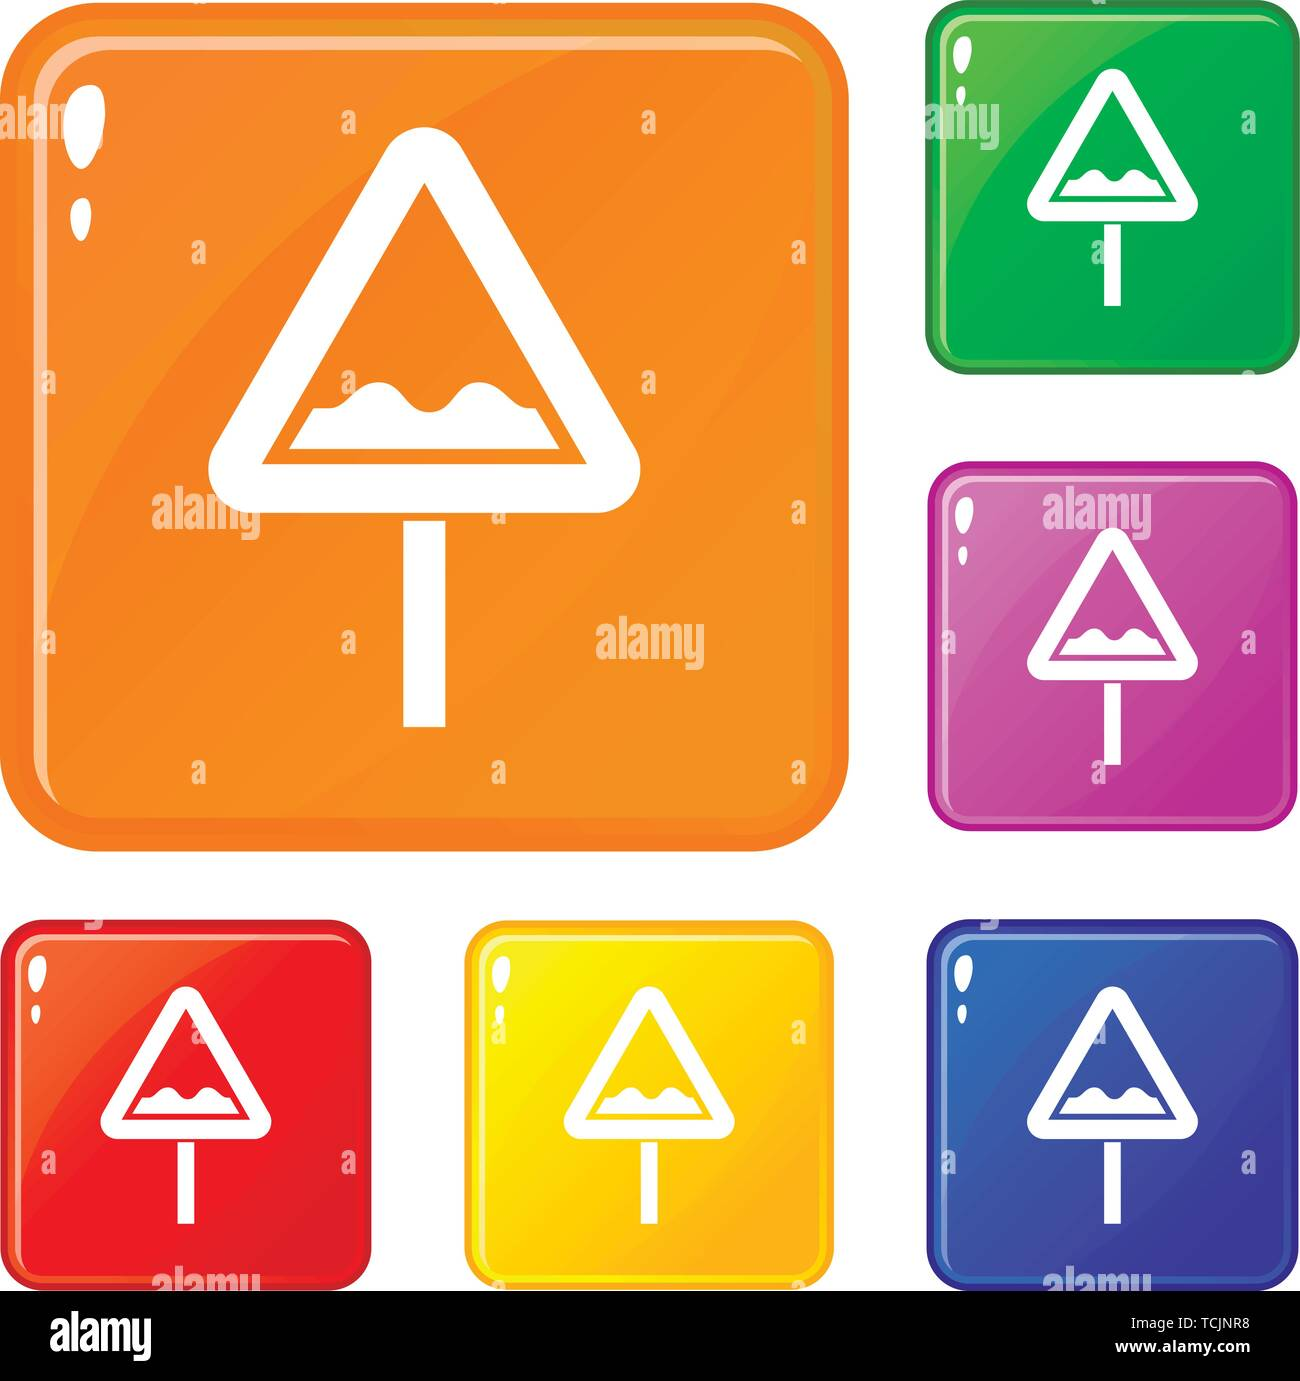 Uneven triangular road sign icons set vector color - Stock Image